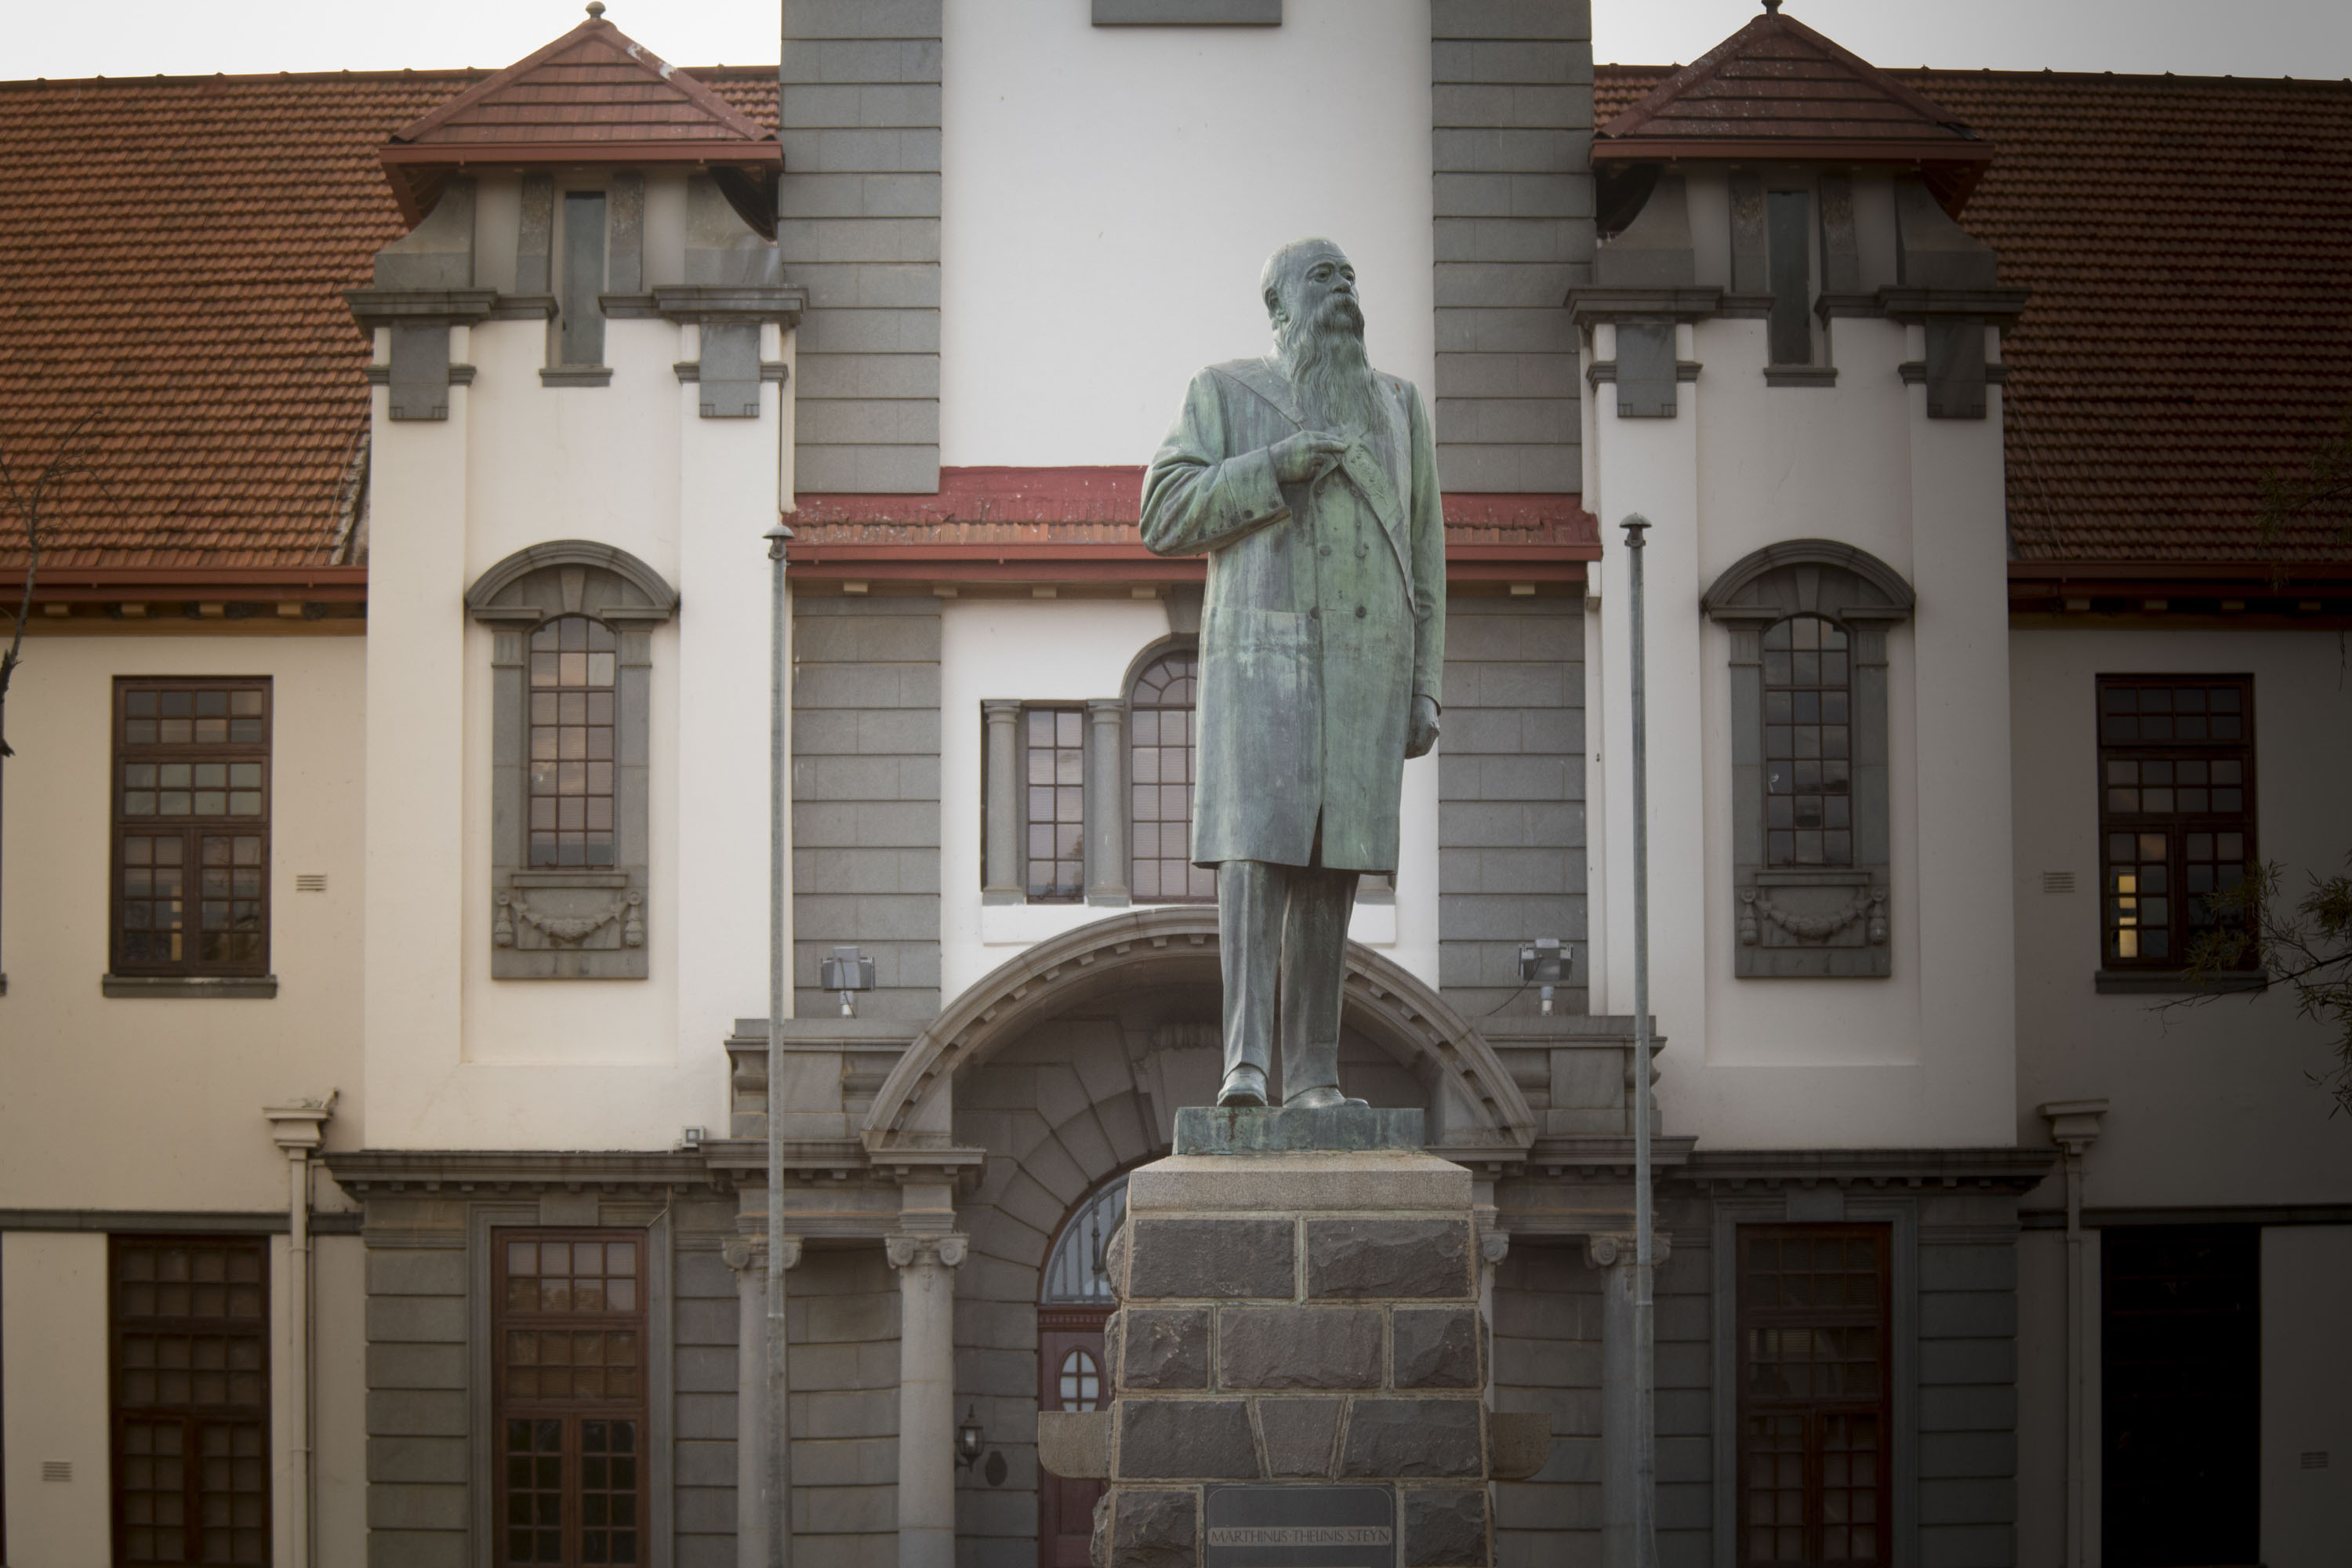 MT Steyn - Main Building and Statue 2